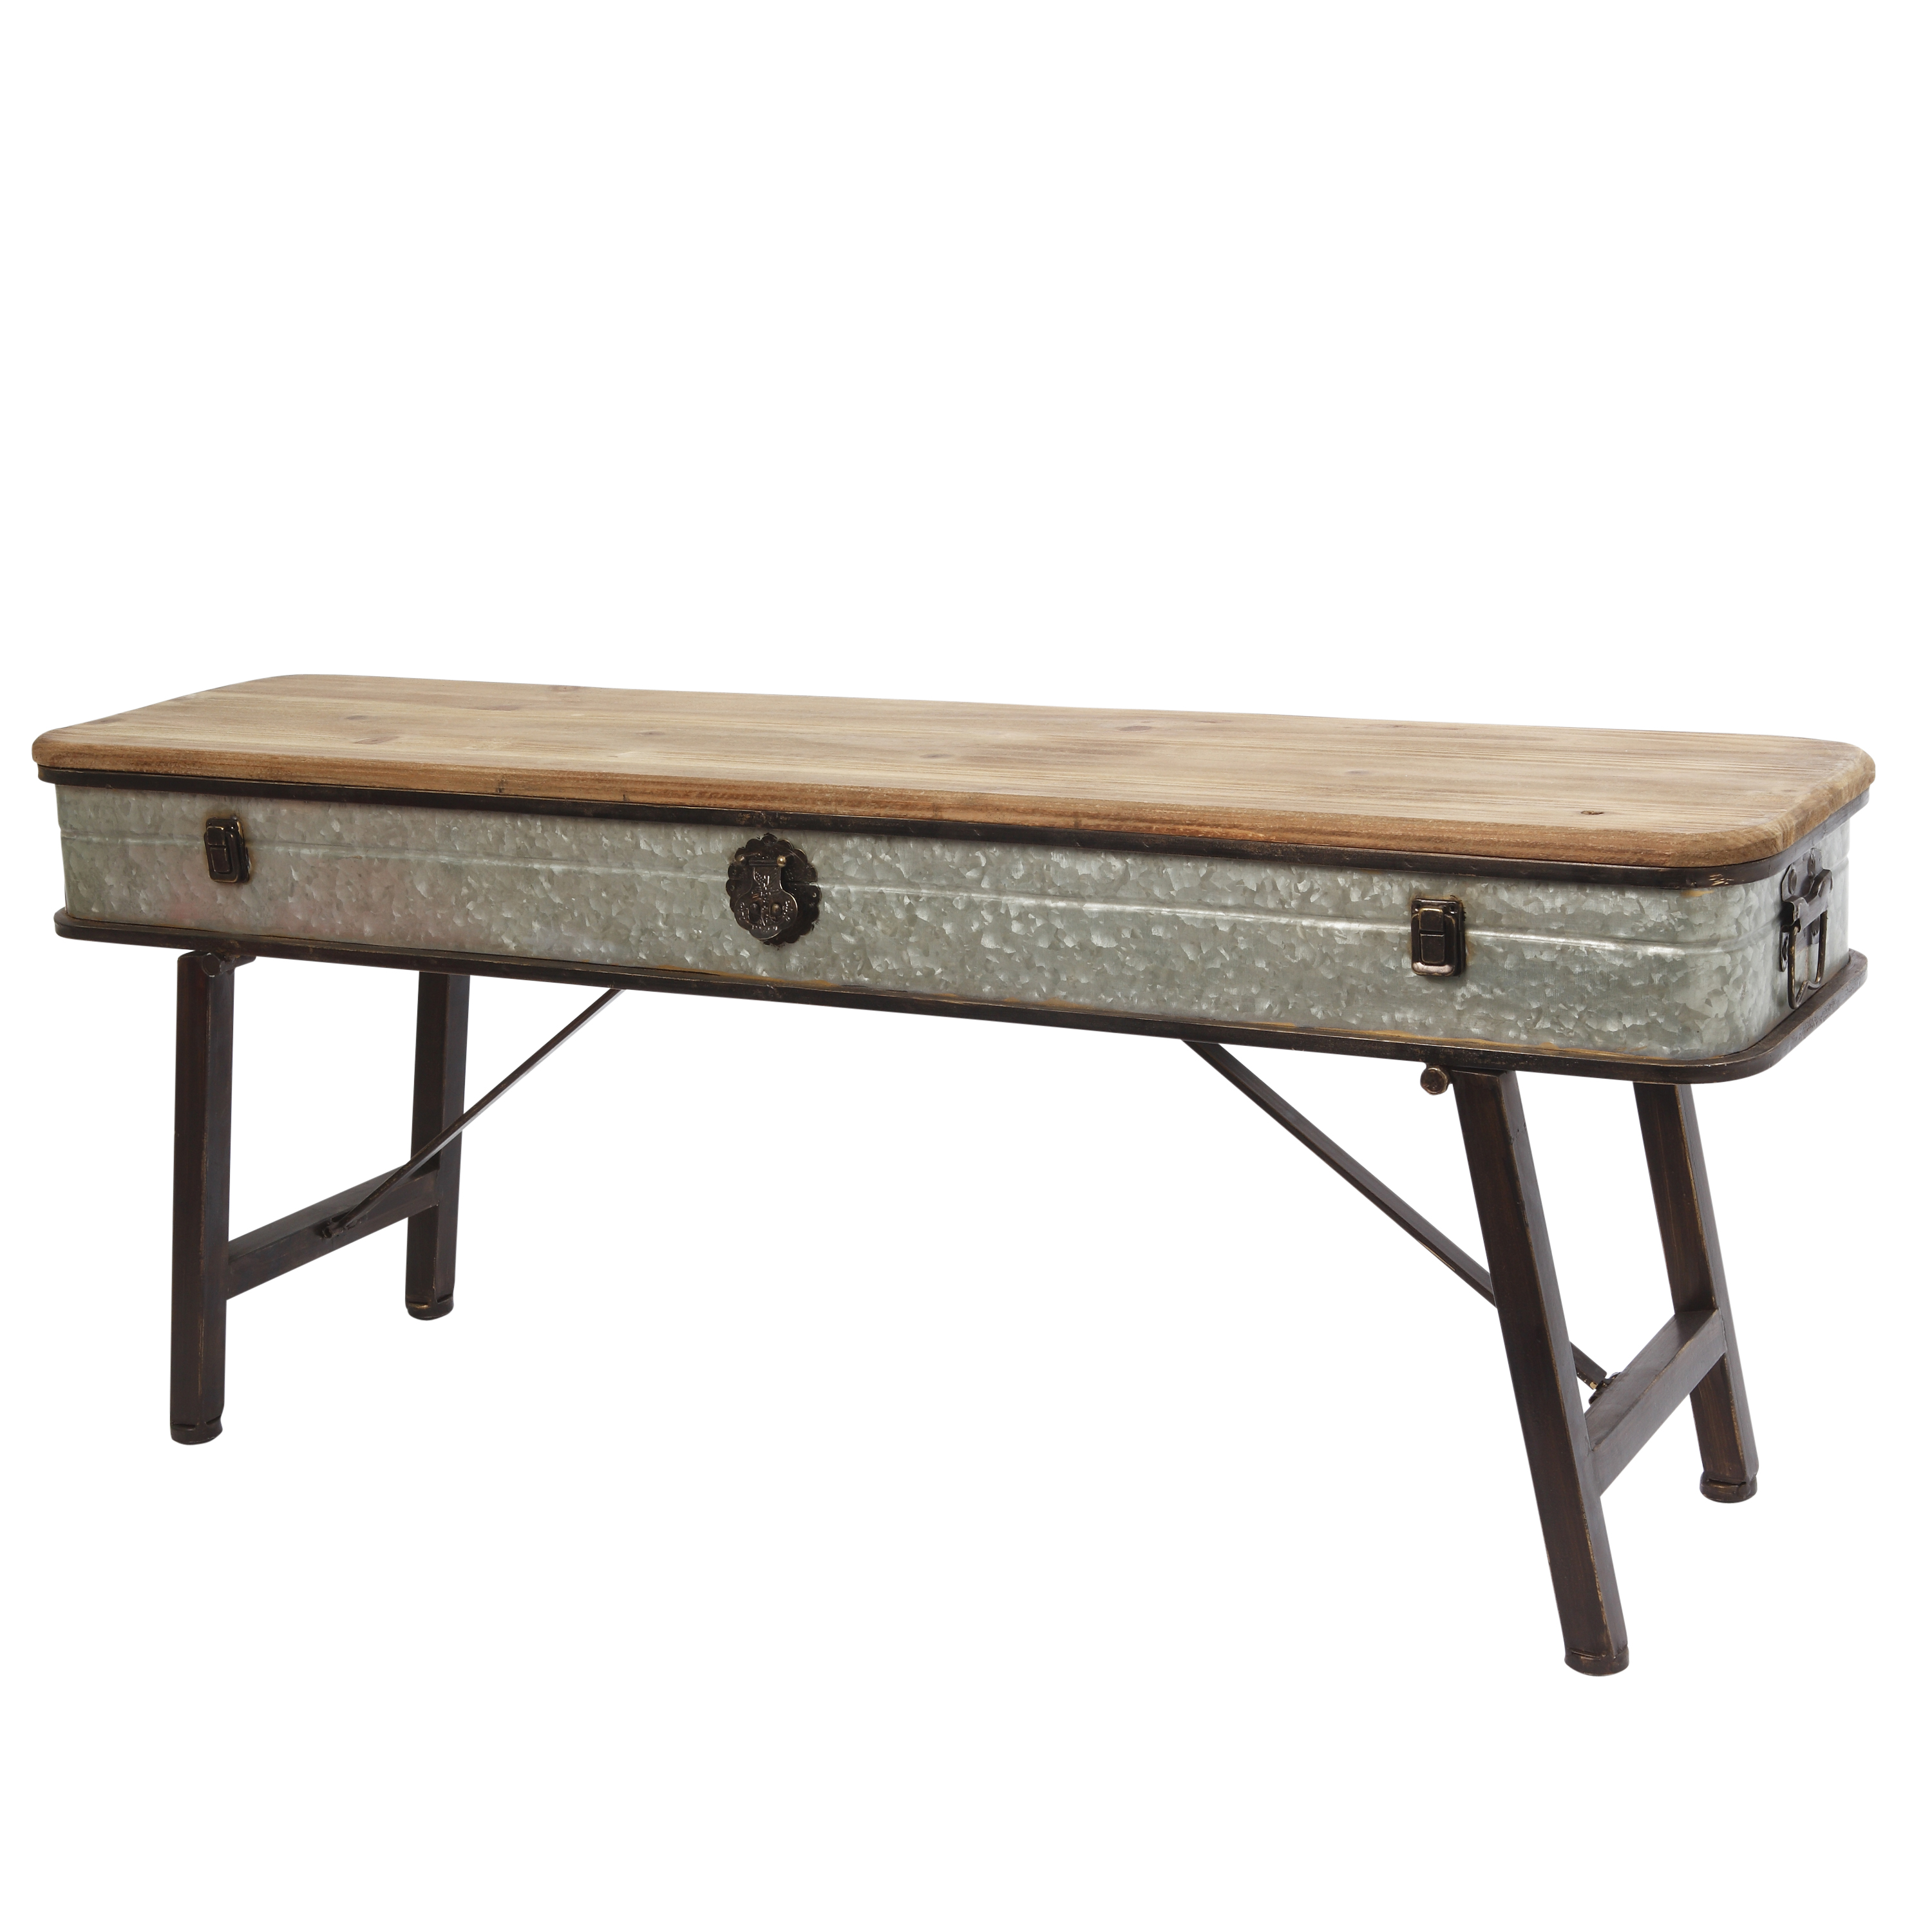 41.25 Inch Metal and Wood Antique Bench with Latch Accent